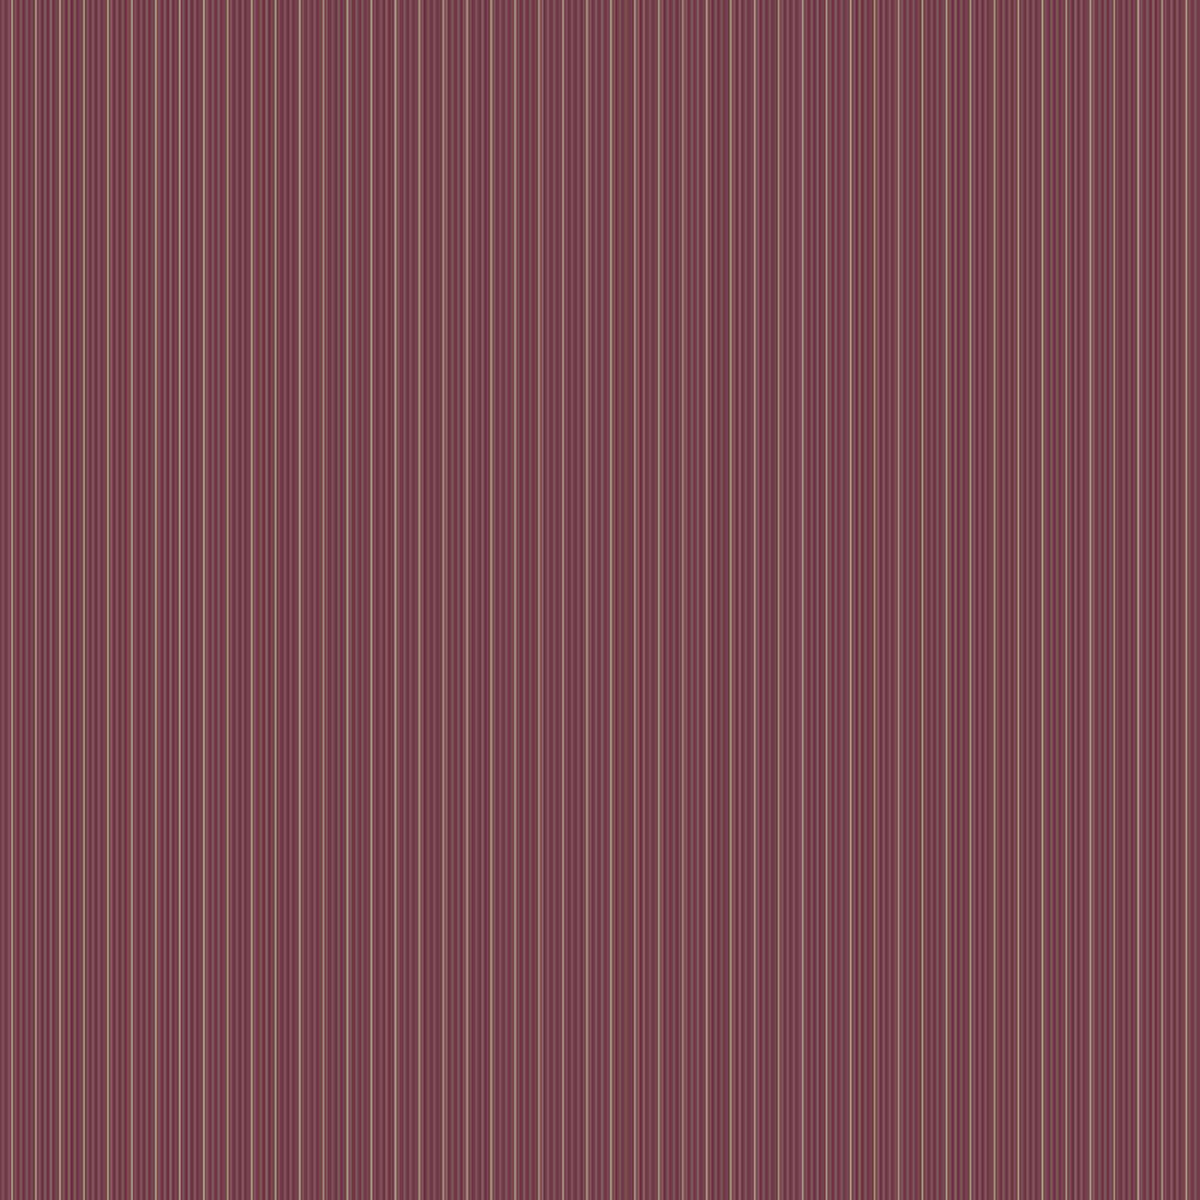 Frideswide Merlot Pinstripe Wallpaper